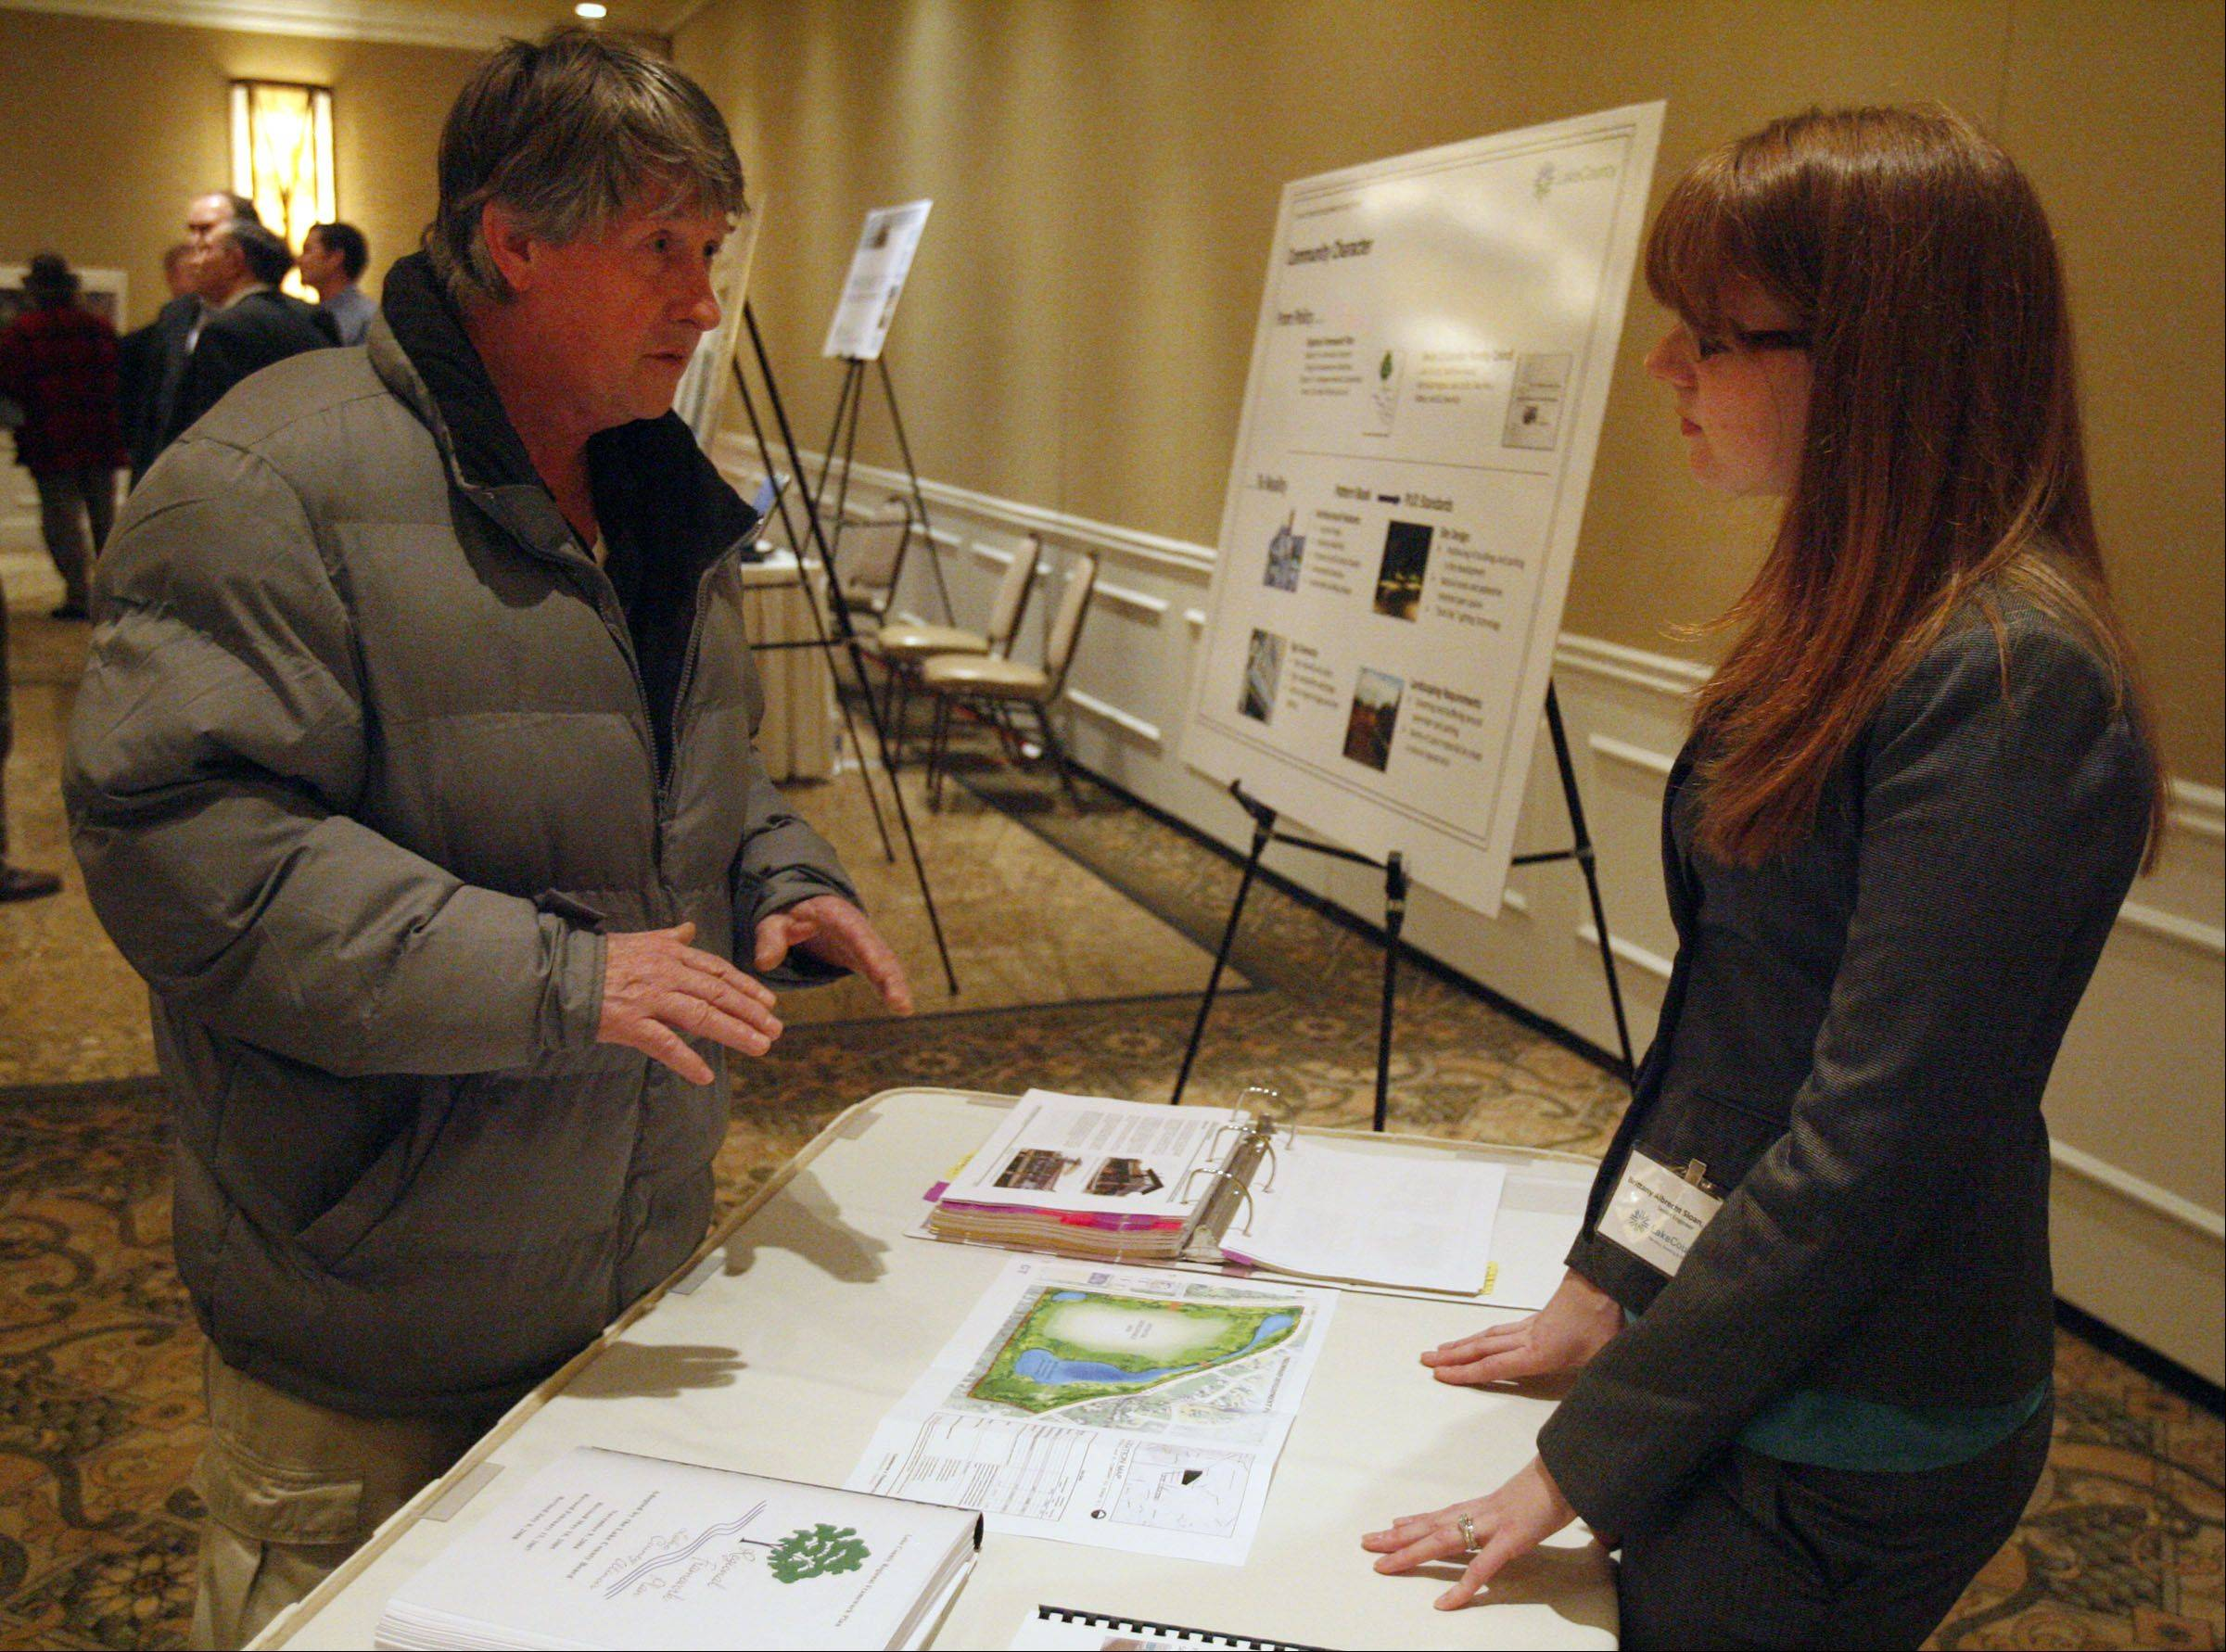 George Leclaire/gleclaire@dailyherald.comResident Frank Houlihan talks with Lake County engineer Brittany Albrecht at a Saturday open house on rezoning the Dimucci family property at Rand and Old McHenry roads.